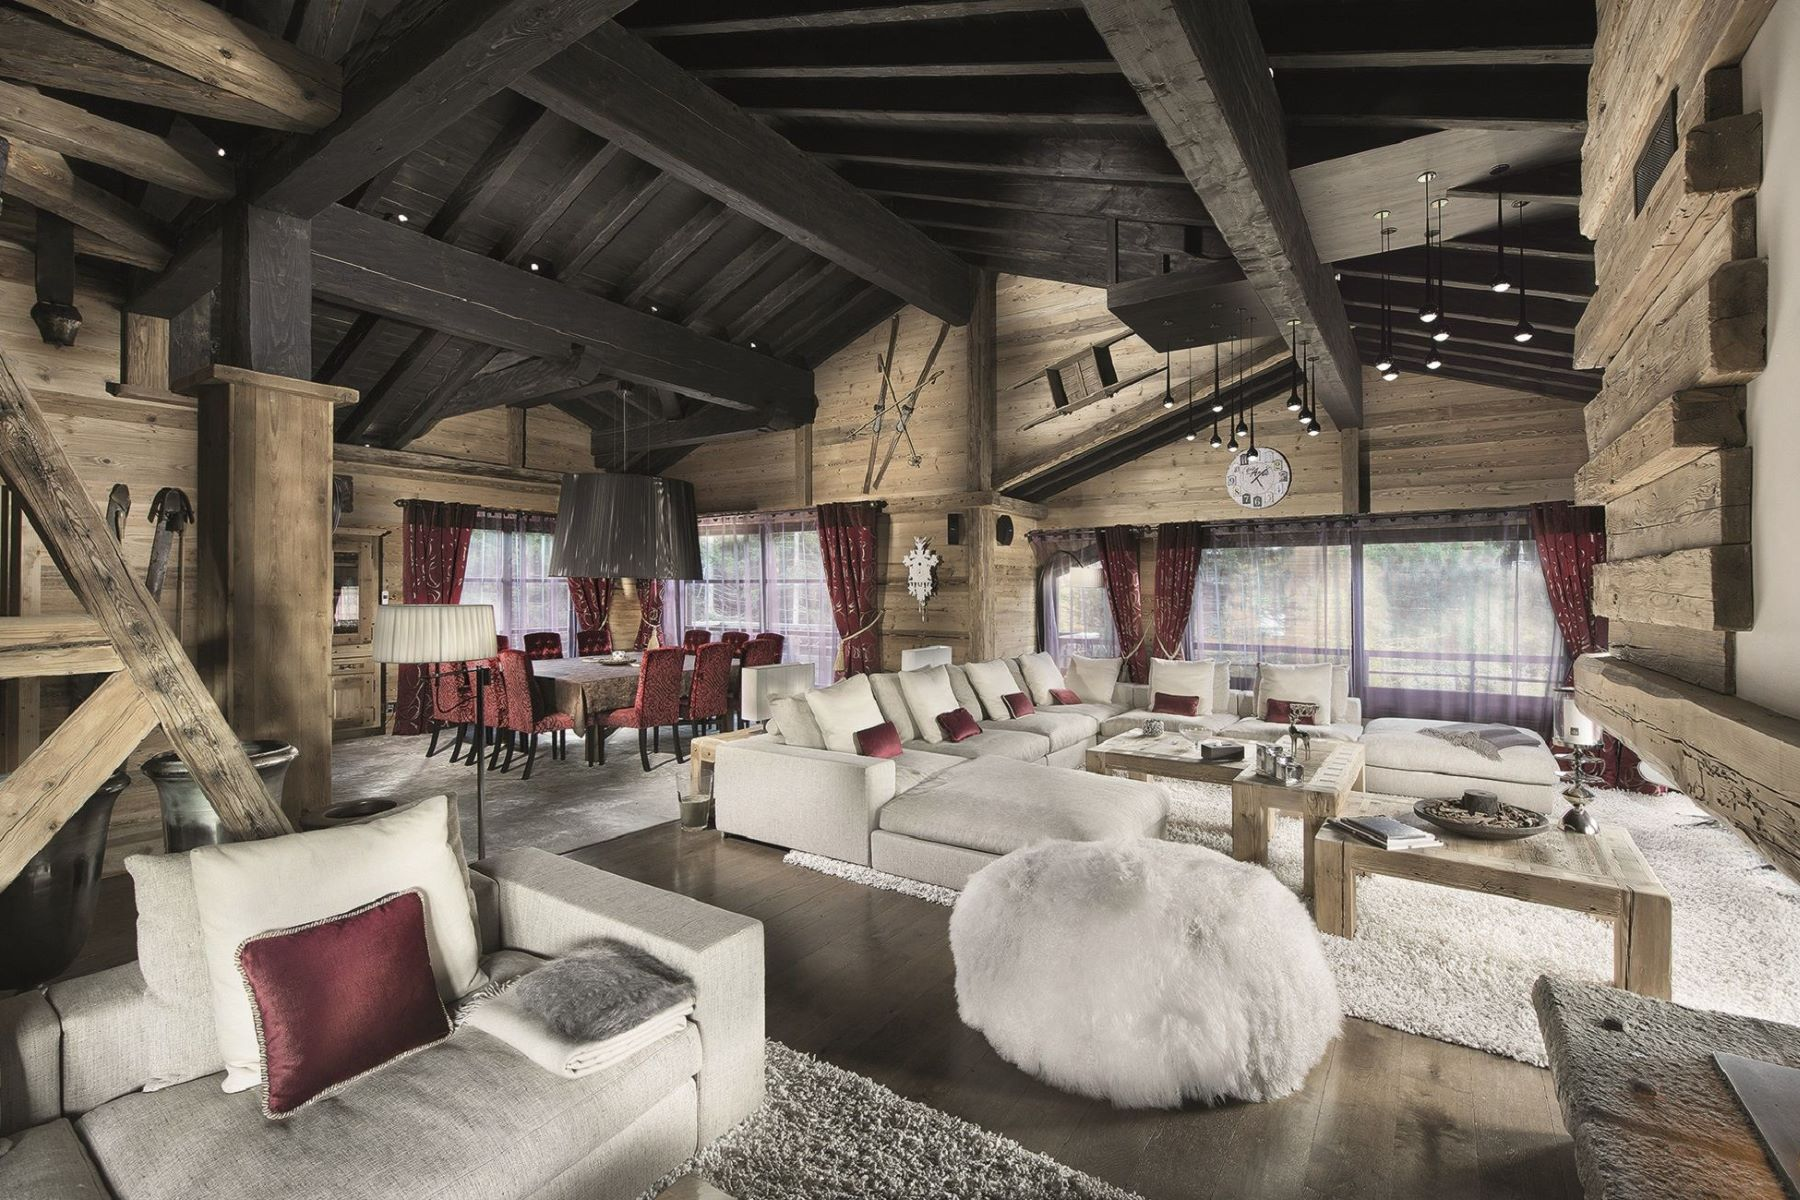 Single Family Home for Sale at Luxury Chalet Courchevel Courchevel, Rhone-Alpes 73120 France